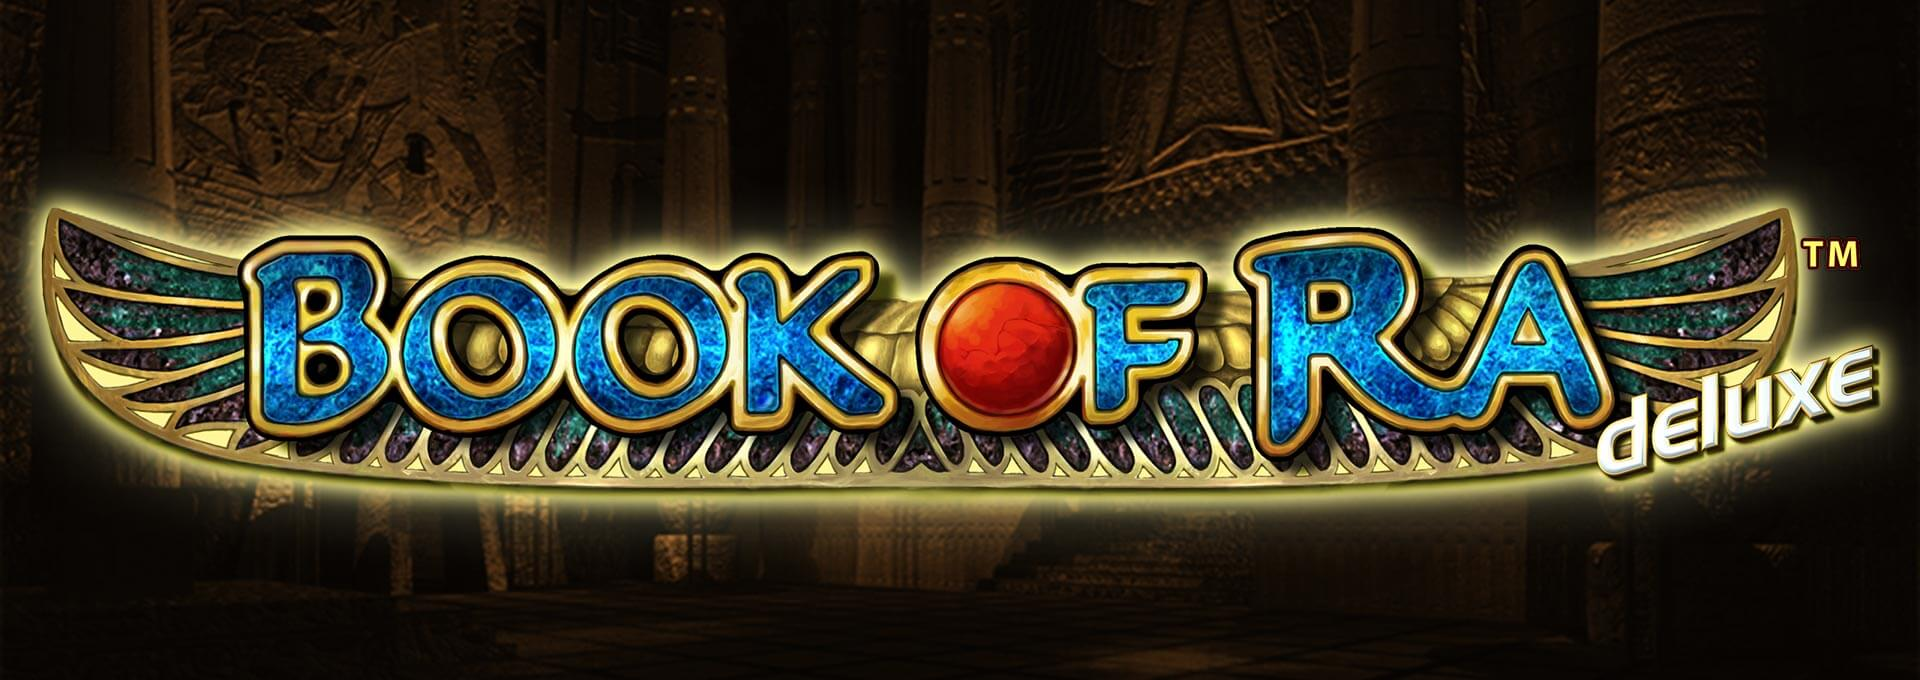 free online slots no deposit book of ra free game